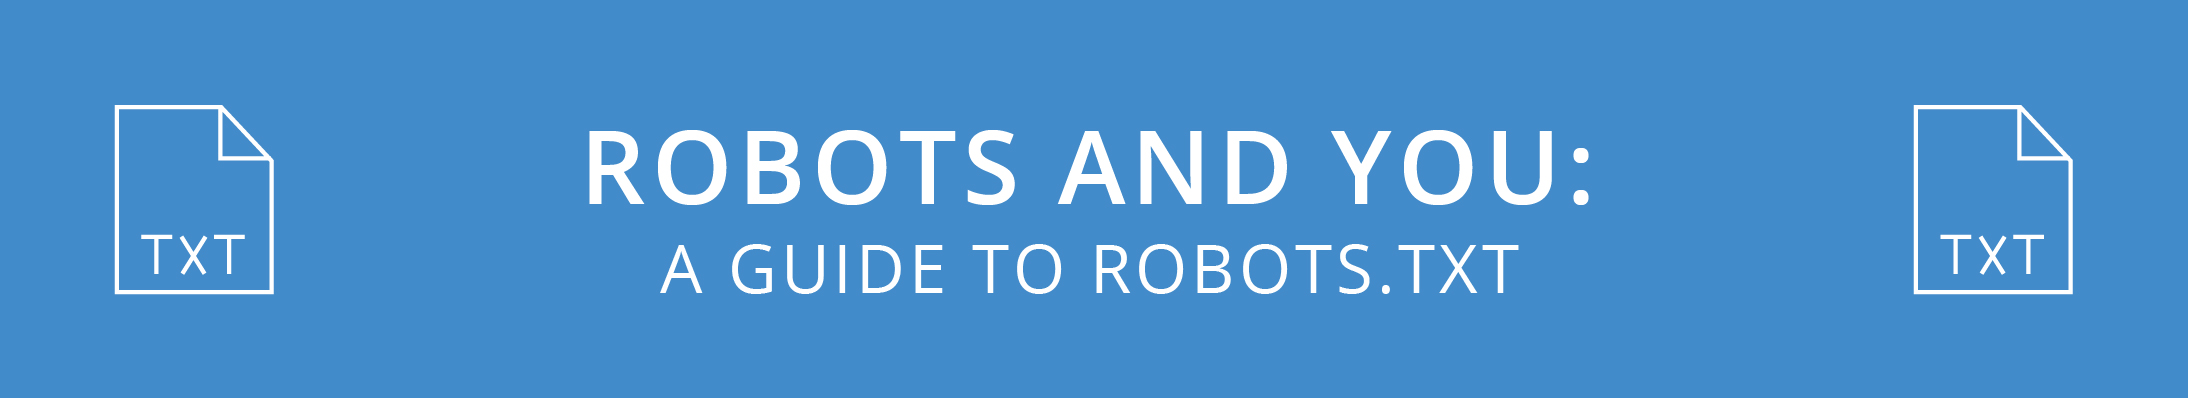 Robots and You: A Guide to Robots.txt